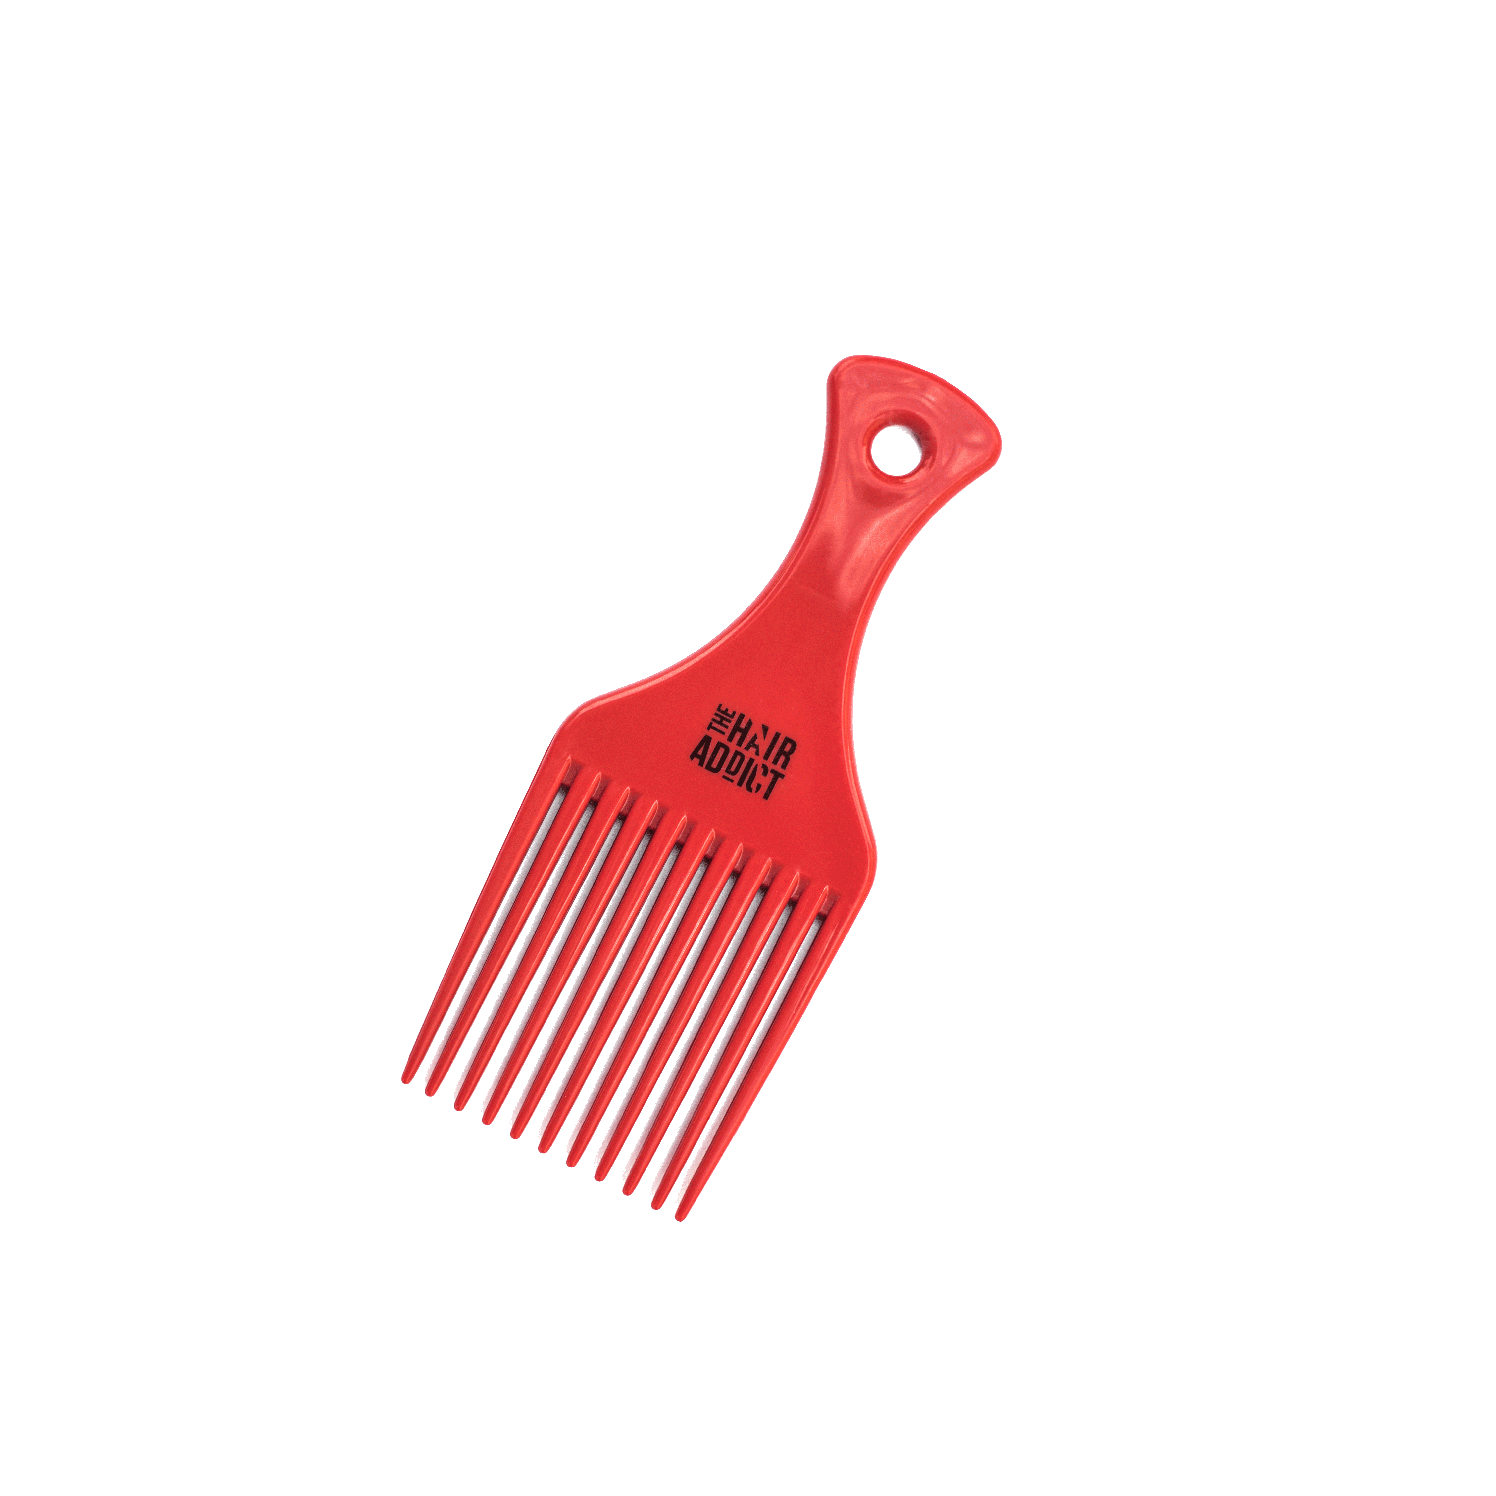 Hair Pick • Tools & Accessories • Source Beauty Egypt